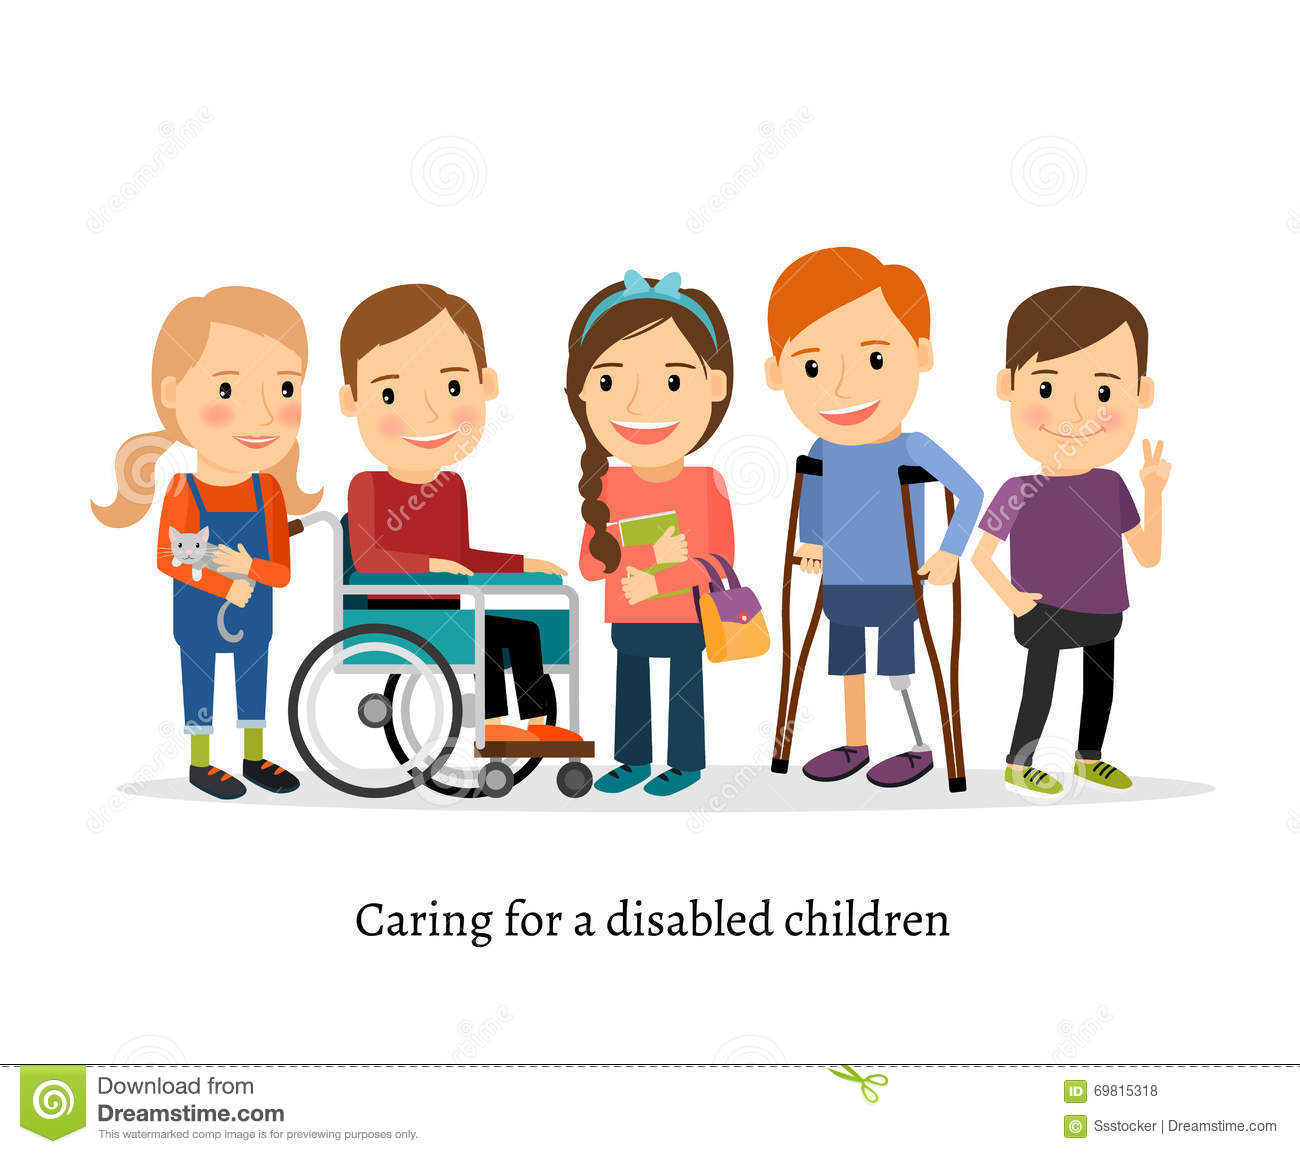 mainstreaming children with disabilities It is important to understand that the mainstreaming of children with disabilities  should not be implemented according to a certain standard model this process.